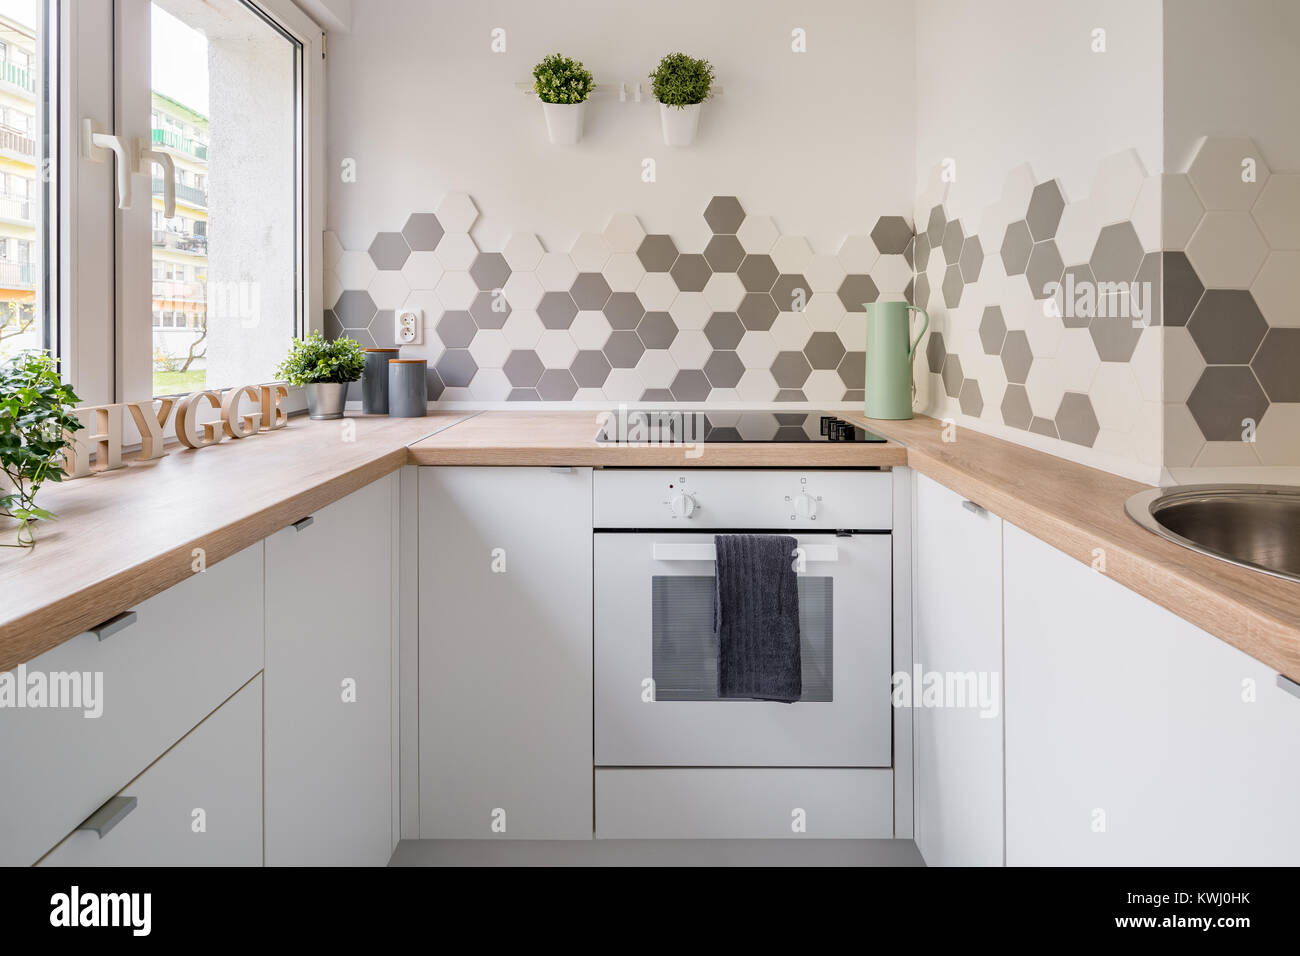 Dan Küche Arbeitsplatte Basin Honeycomb Flooring High Resolution Stock Photography And Images - Alamy